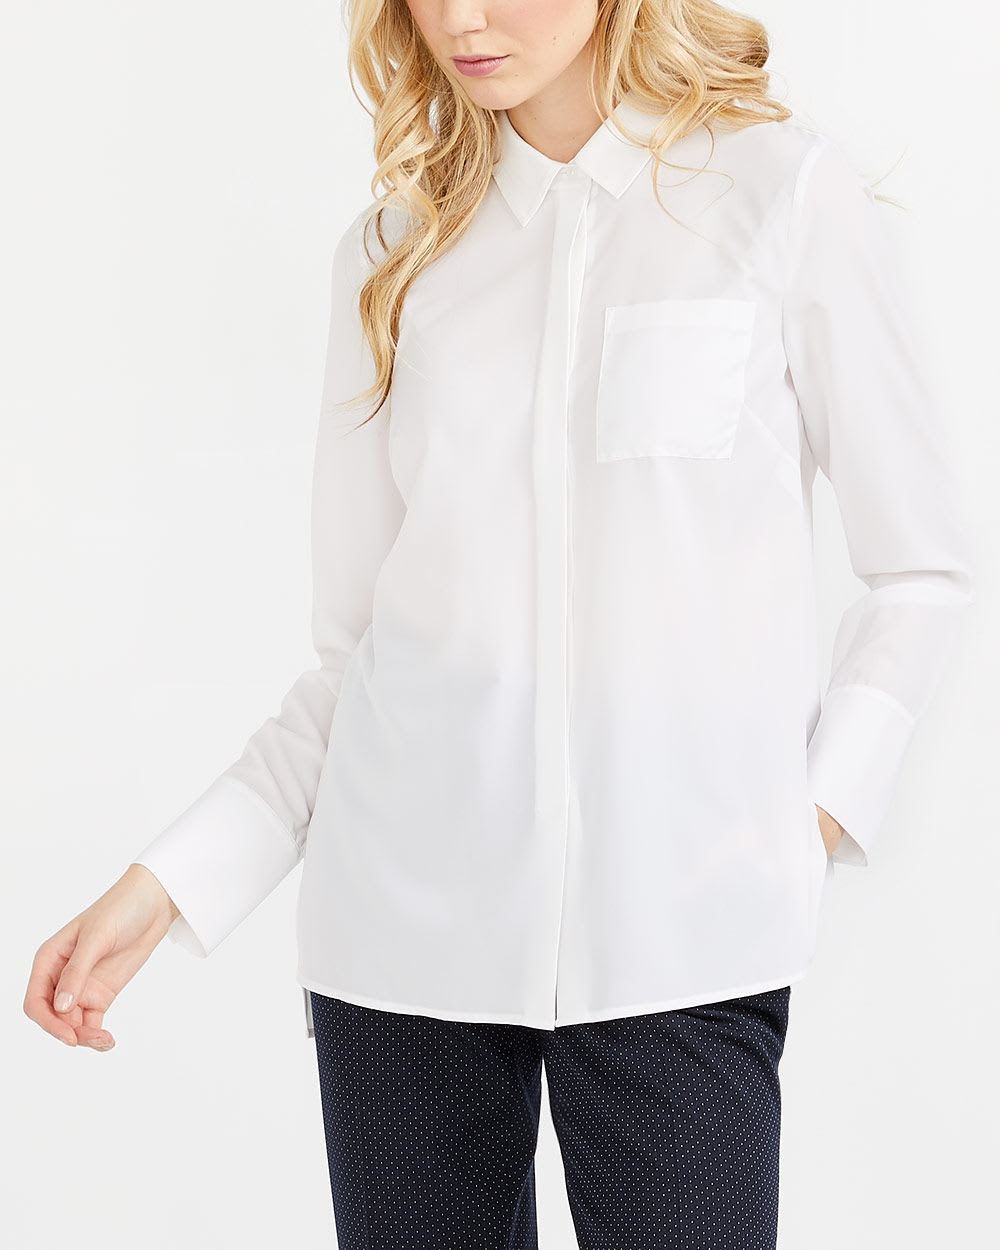 Willow & Thread Stretch Solid Shirt